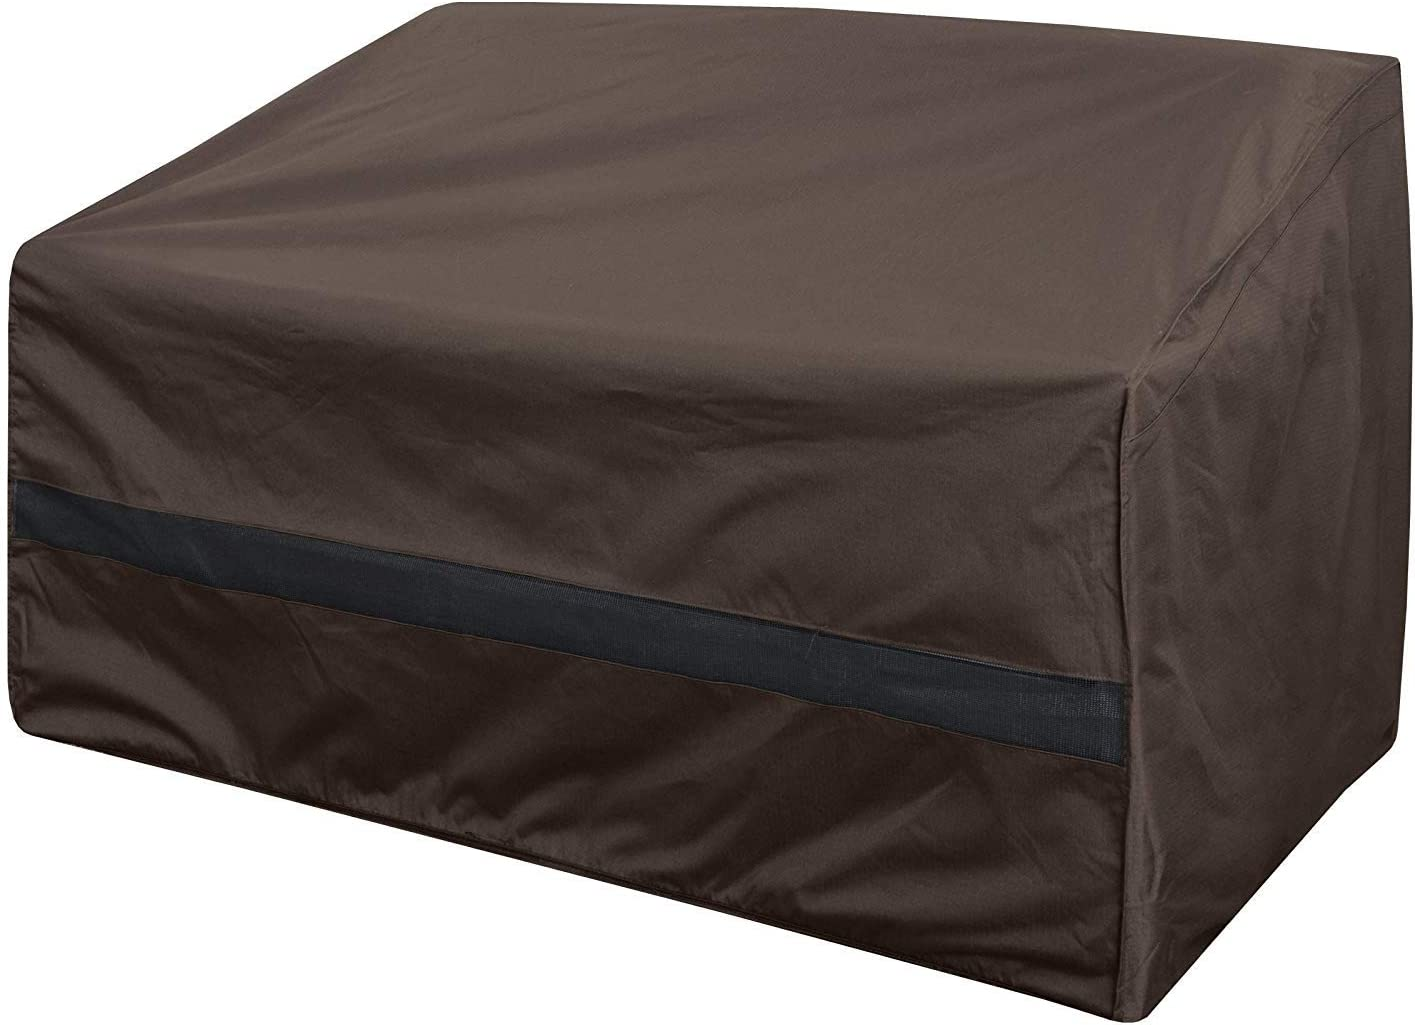 True Guard Patio Furniture Covers Waterproof Heavy Duty - Loveseat Cover, 600D Rip-Stop, Fade/Stain/UV Resistant for Outdoor Patio Furniture, Dark Brown